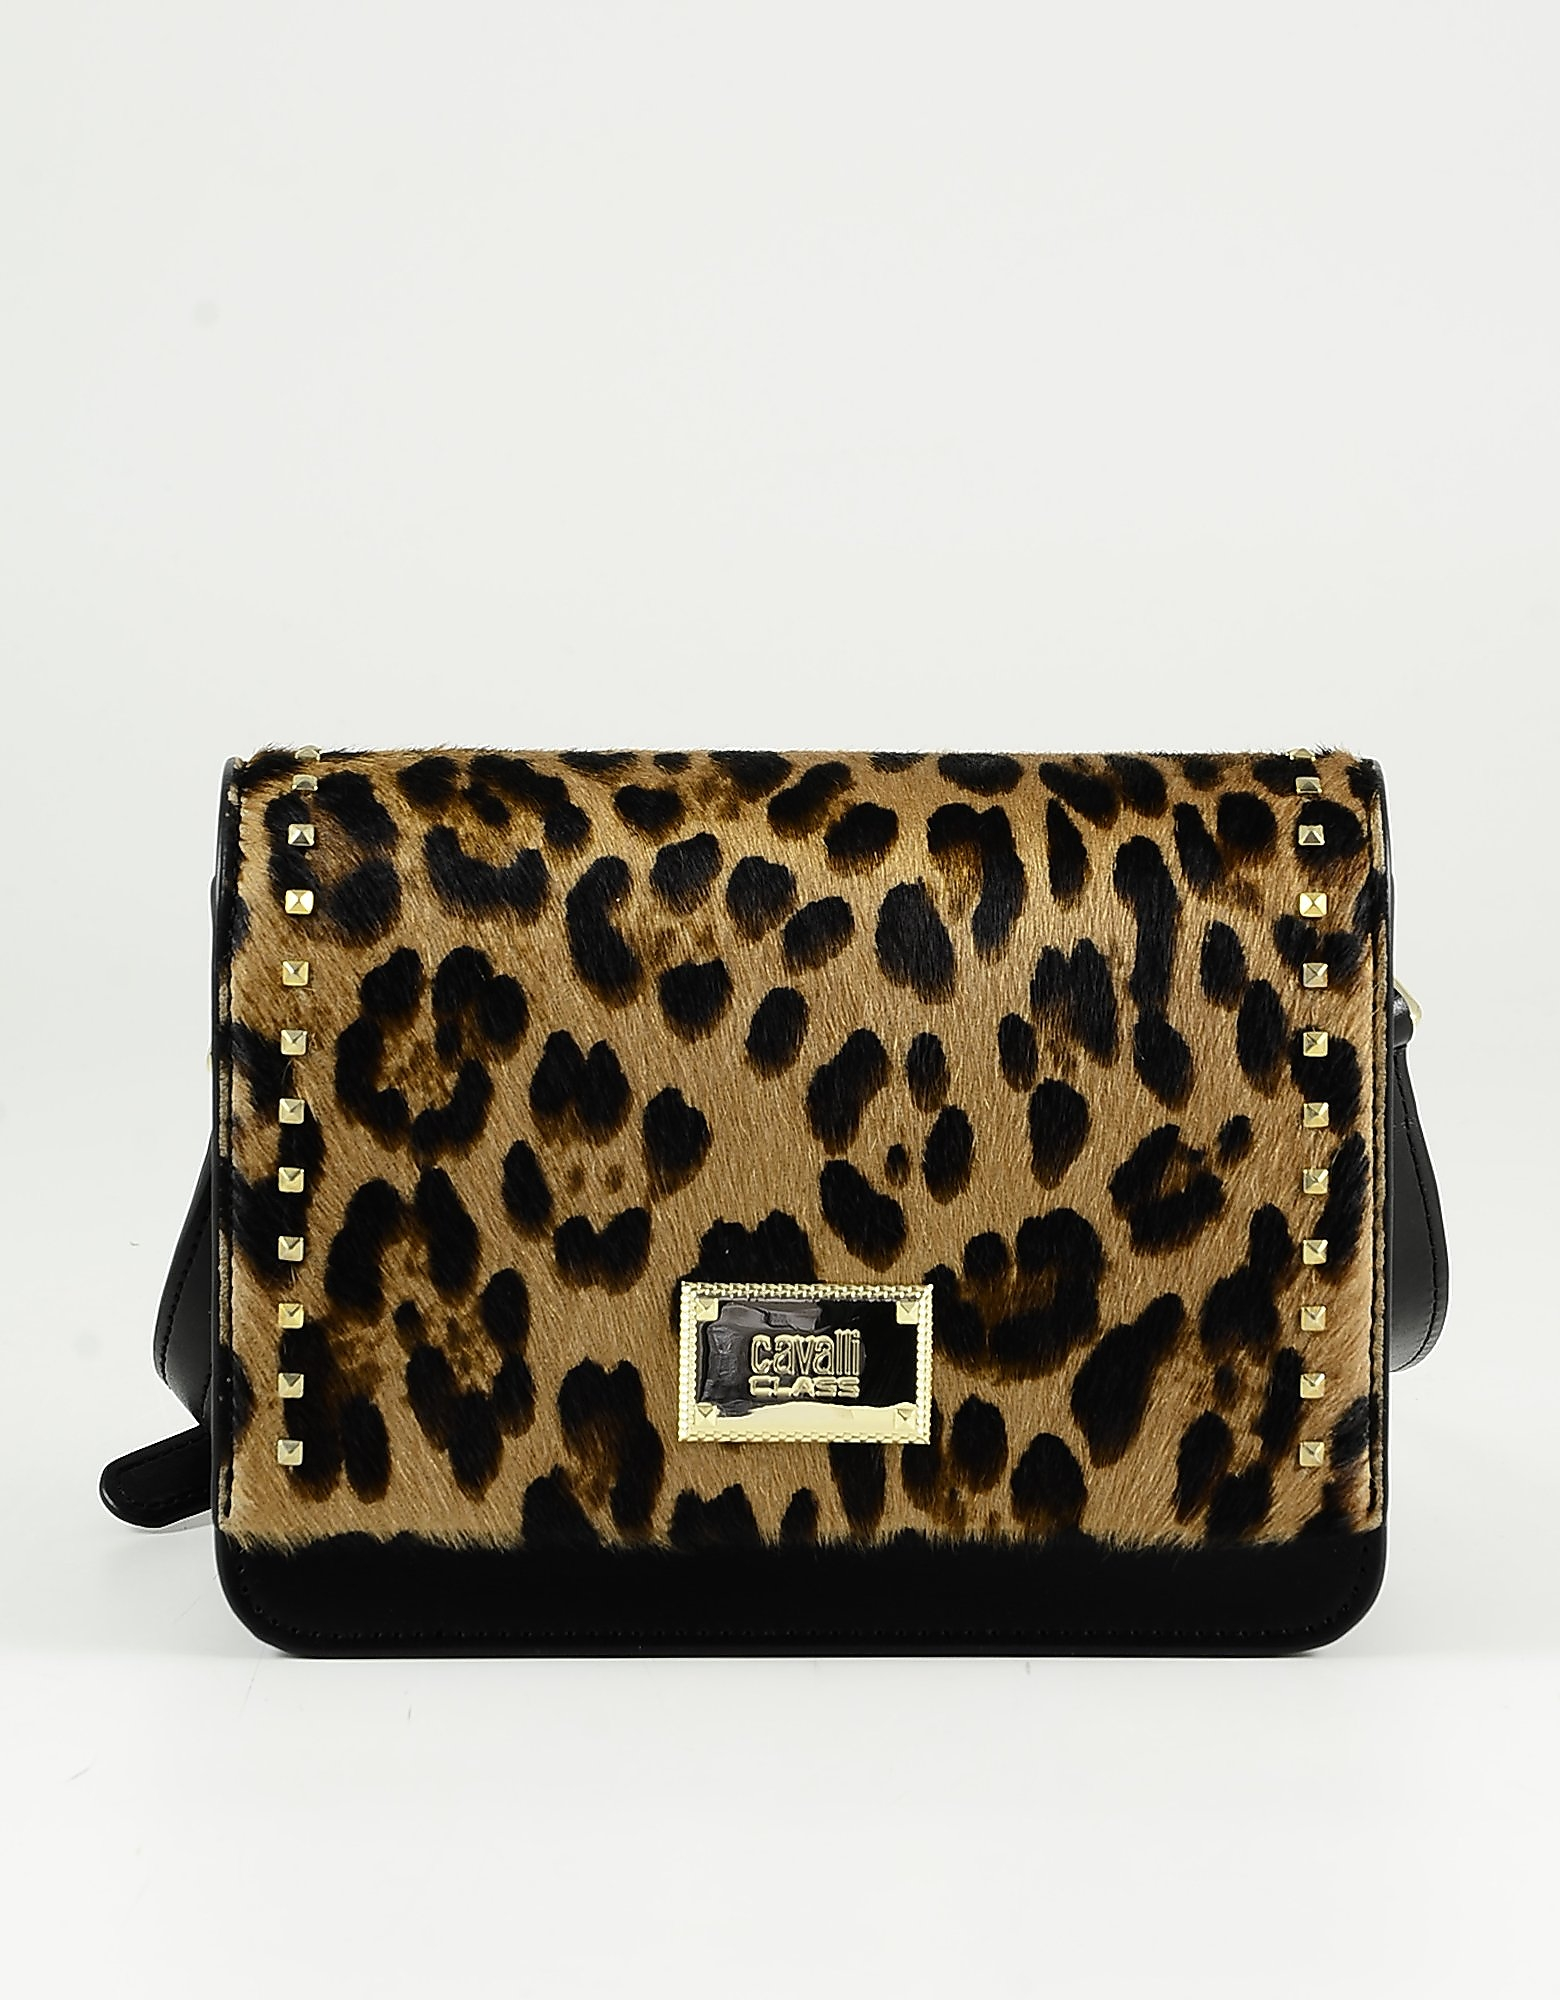 Class Roberto Cavalli Animal Print Hair-calf And Black Leather Shoulder Bag W/studs In Brown